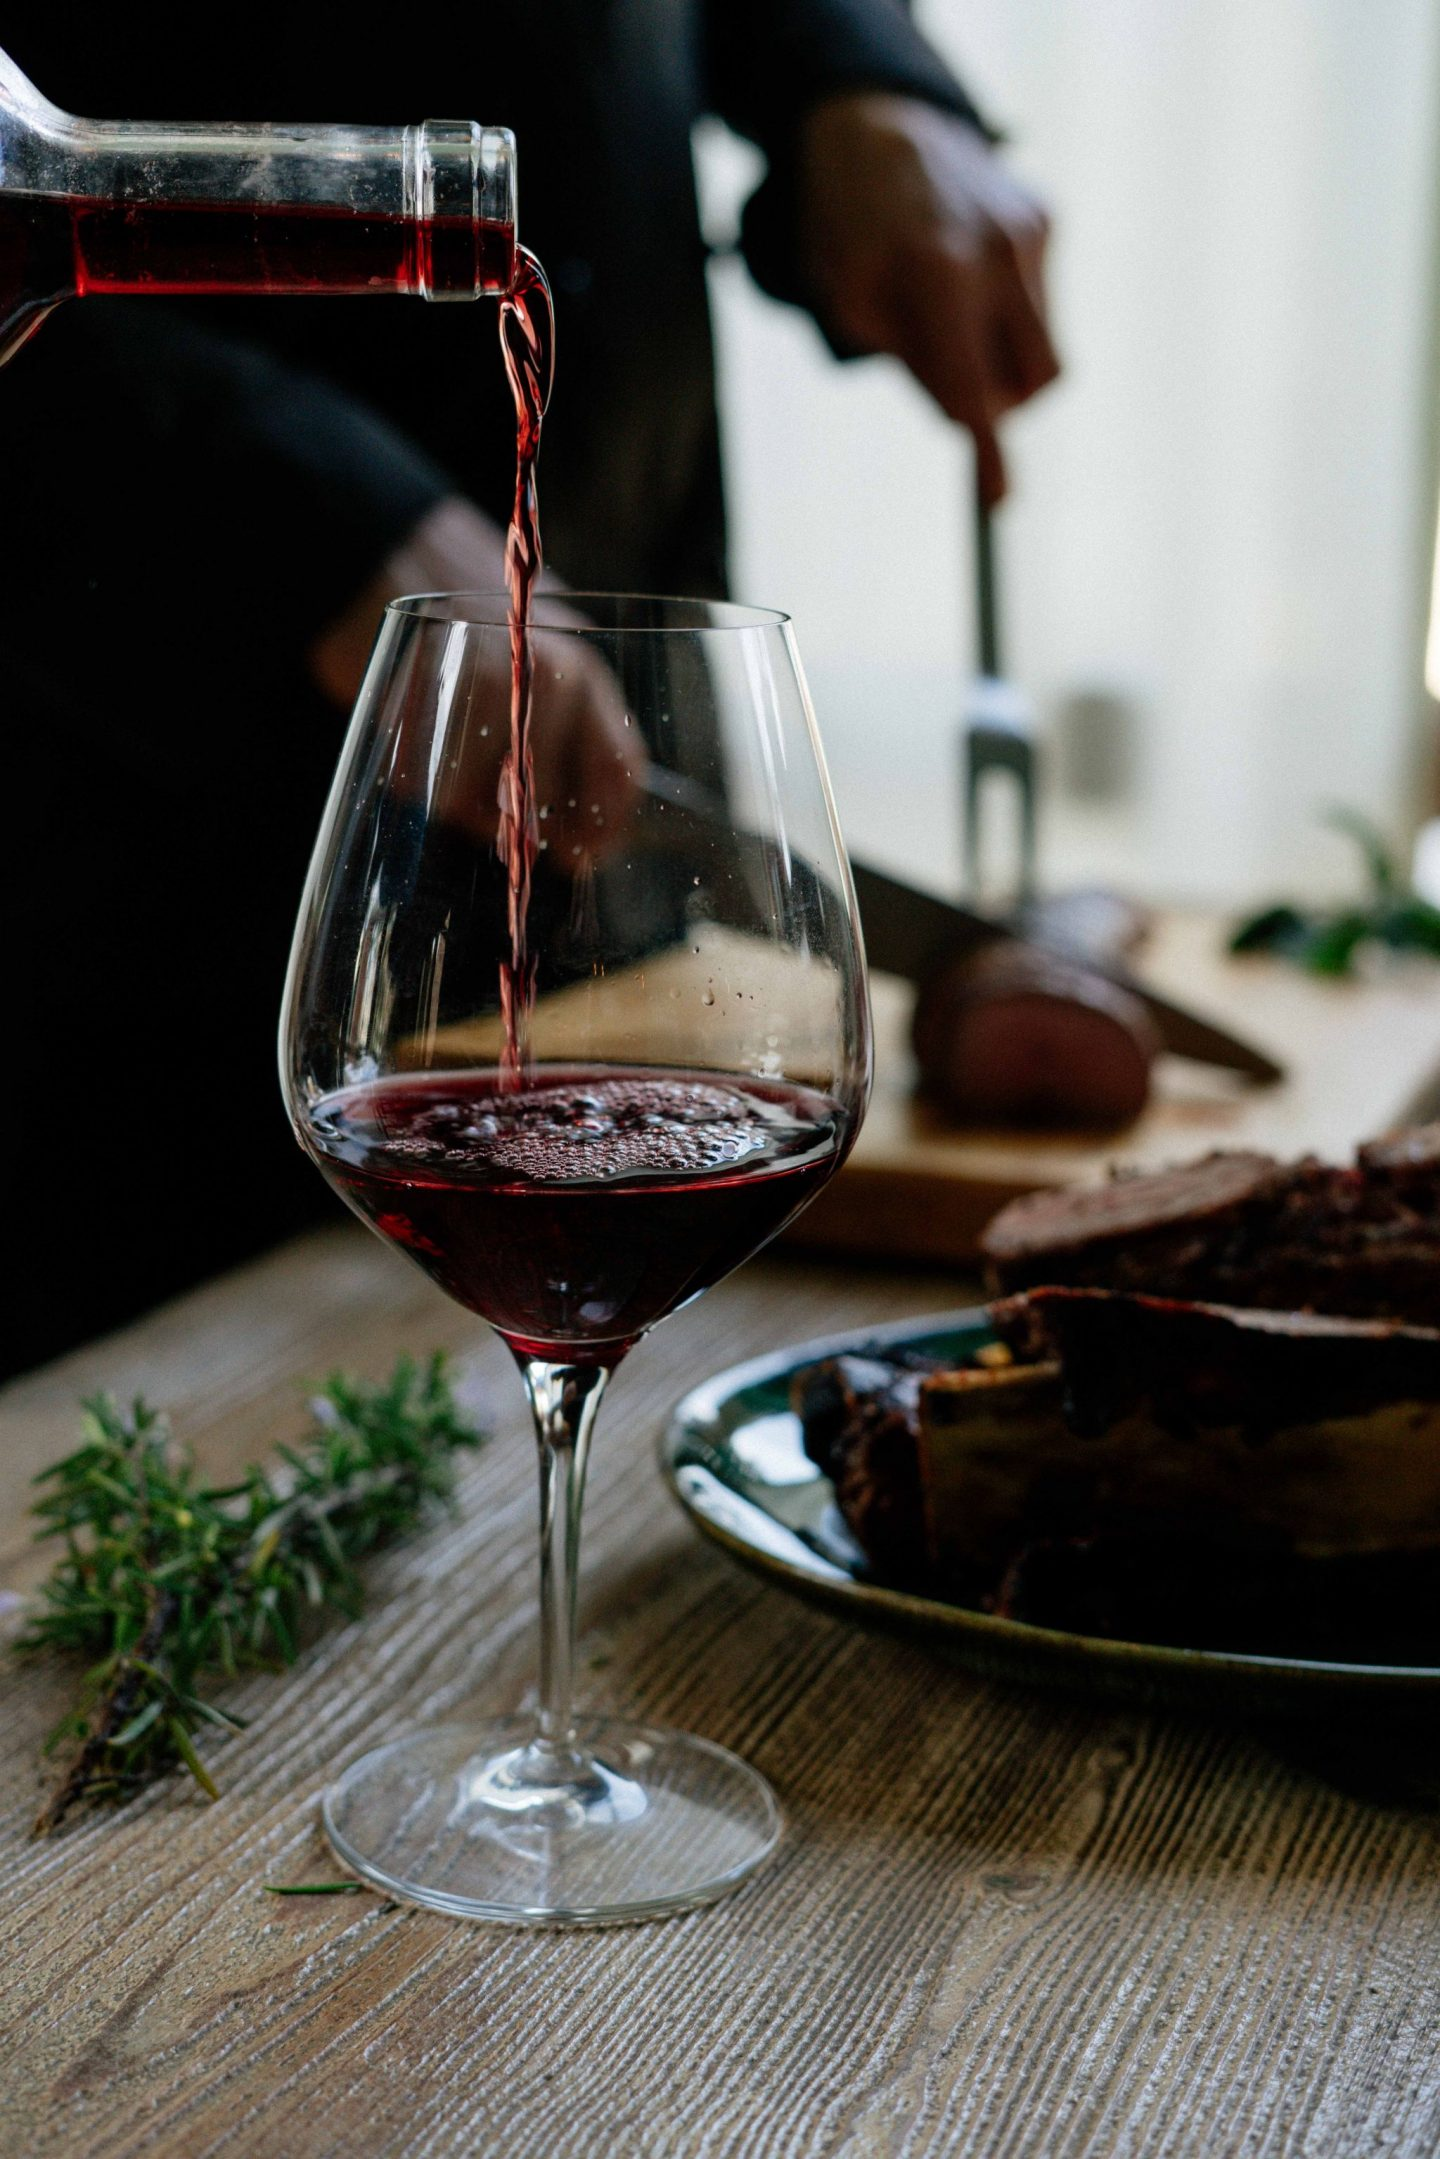 5 AMAZING FACS ABOUT BARBERA RED WINE